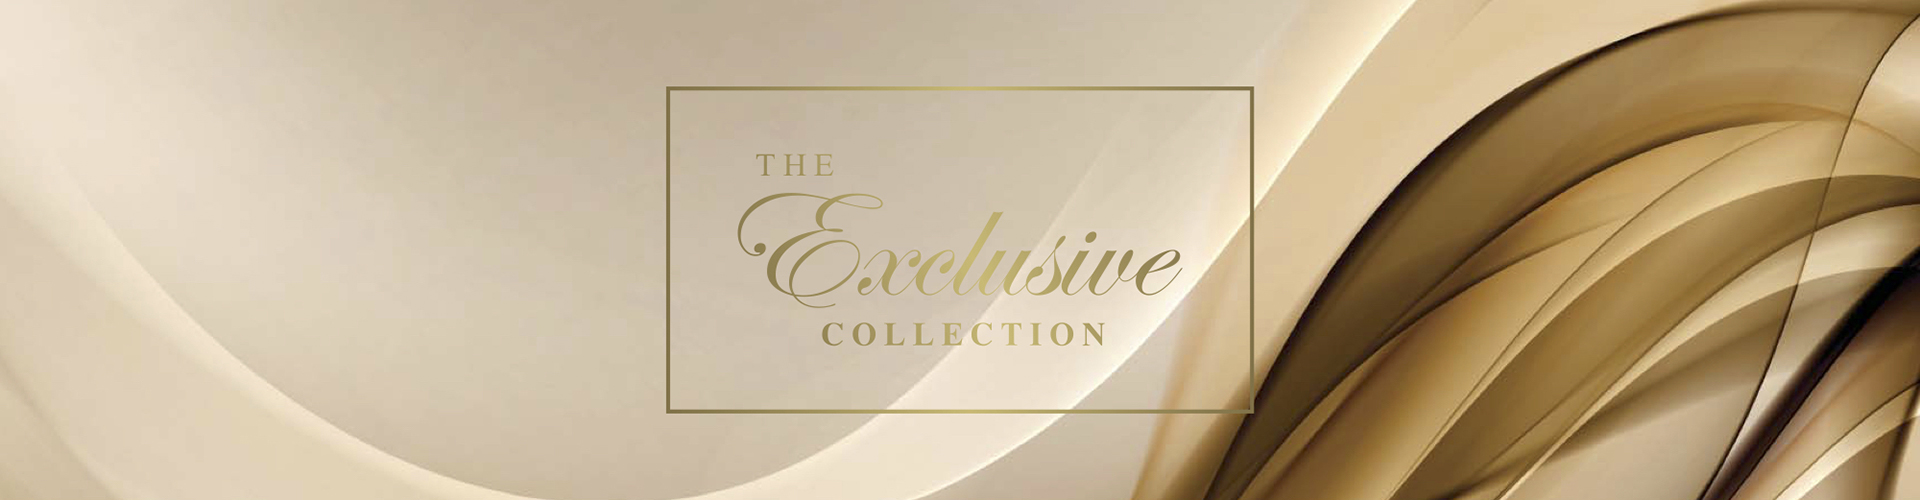 Exclusive_Collection